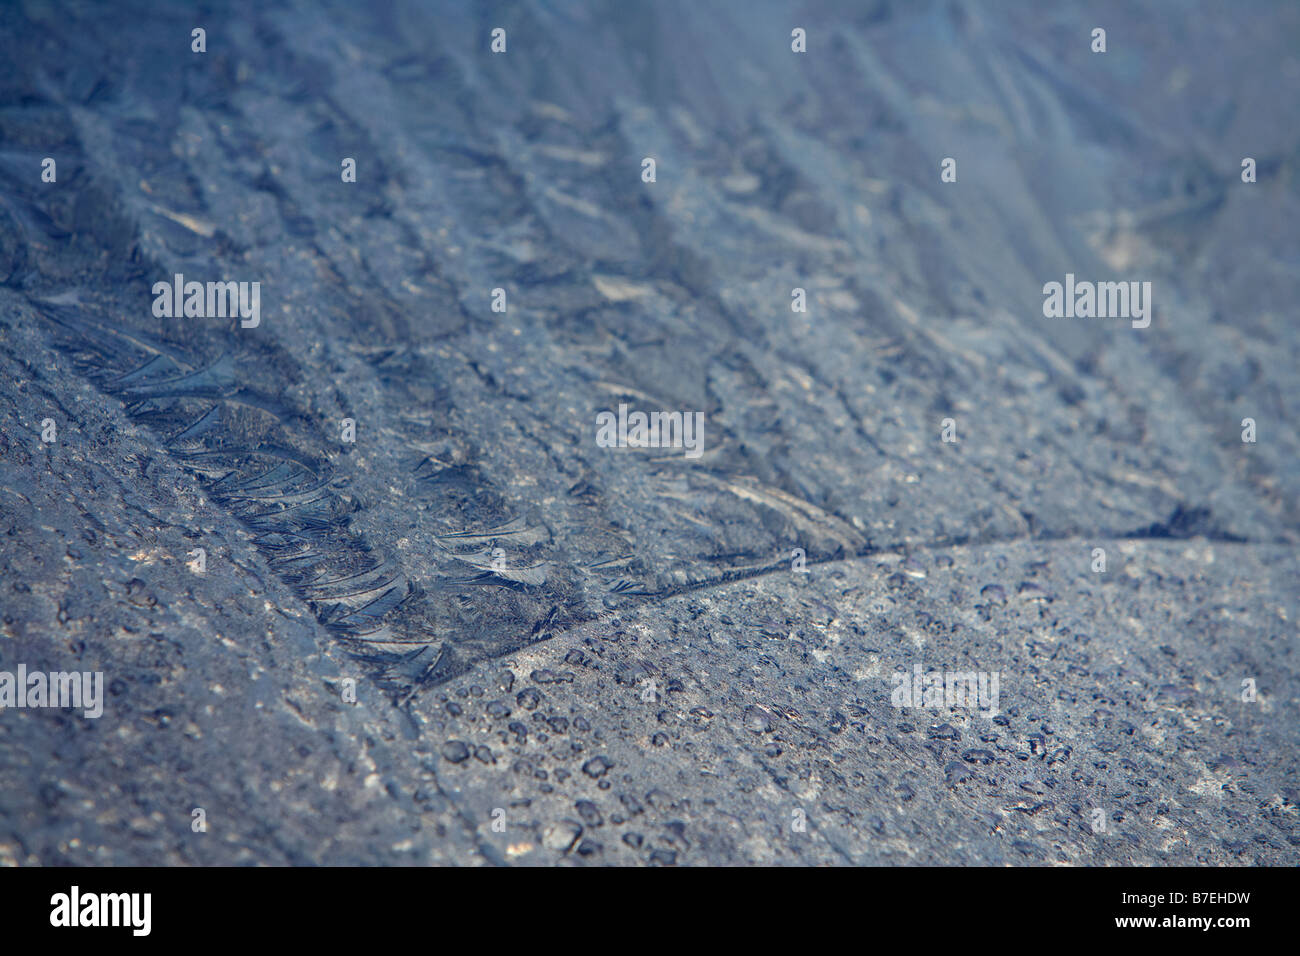 frost on a car windscreen on a cold frosty morning - Stock Image